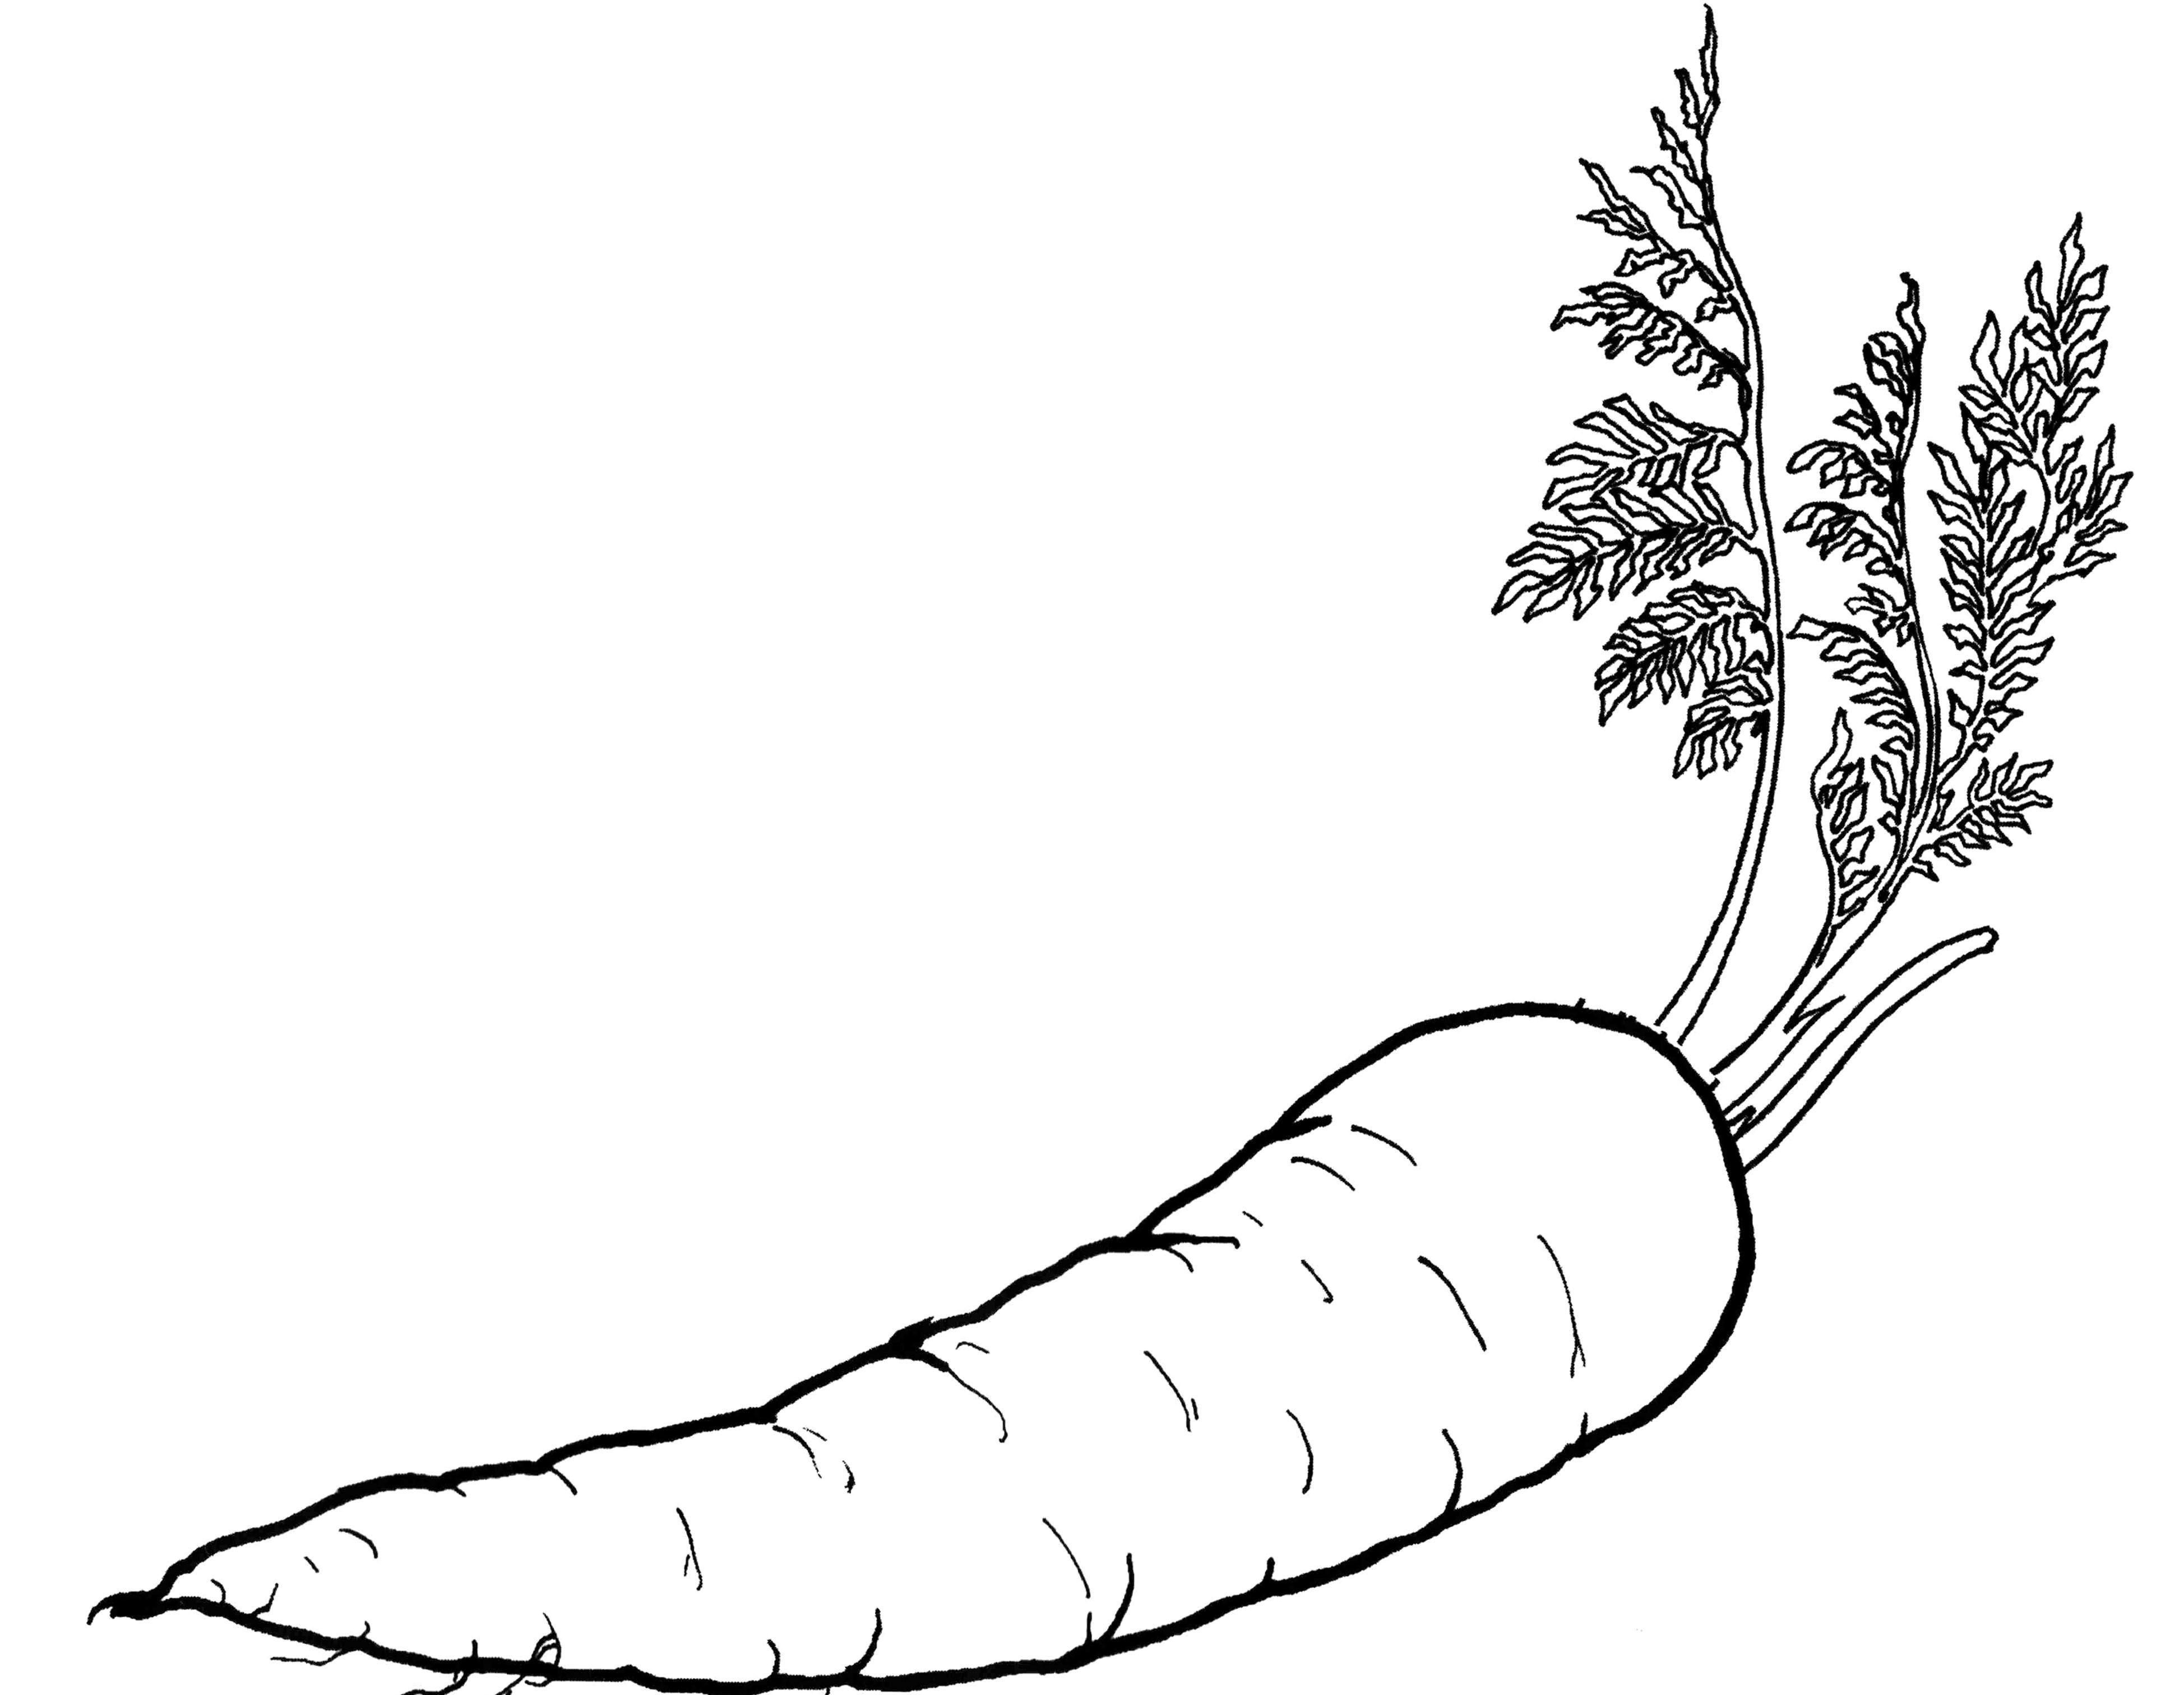 38 Coloring Page Carrots Vegetable Coloring Pages Fruit Coloring Pages Food Coloring Pages